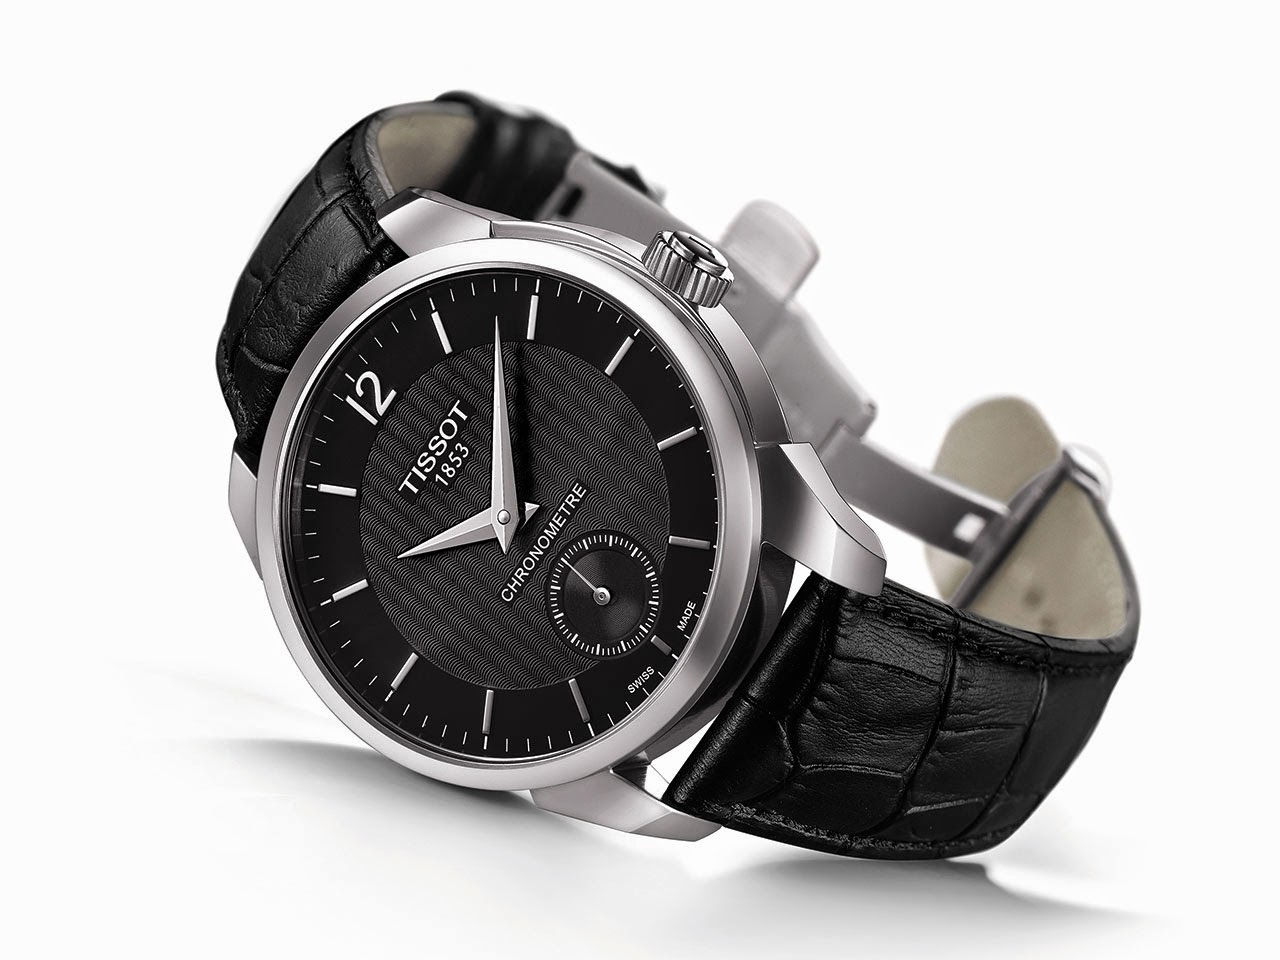 Tissot T-Complication Chronometer Watch